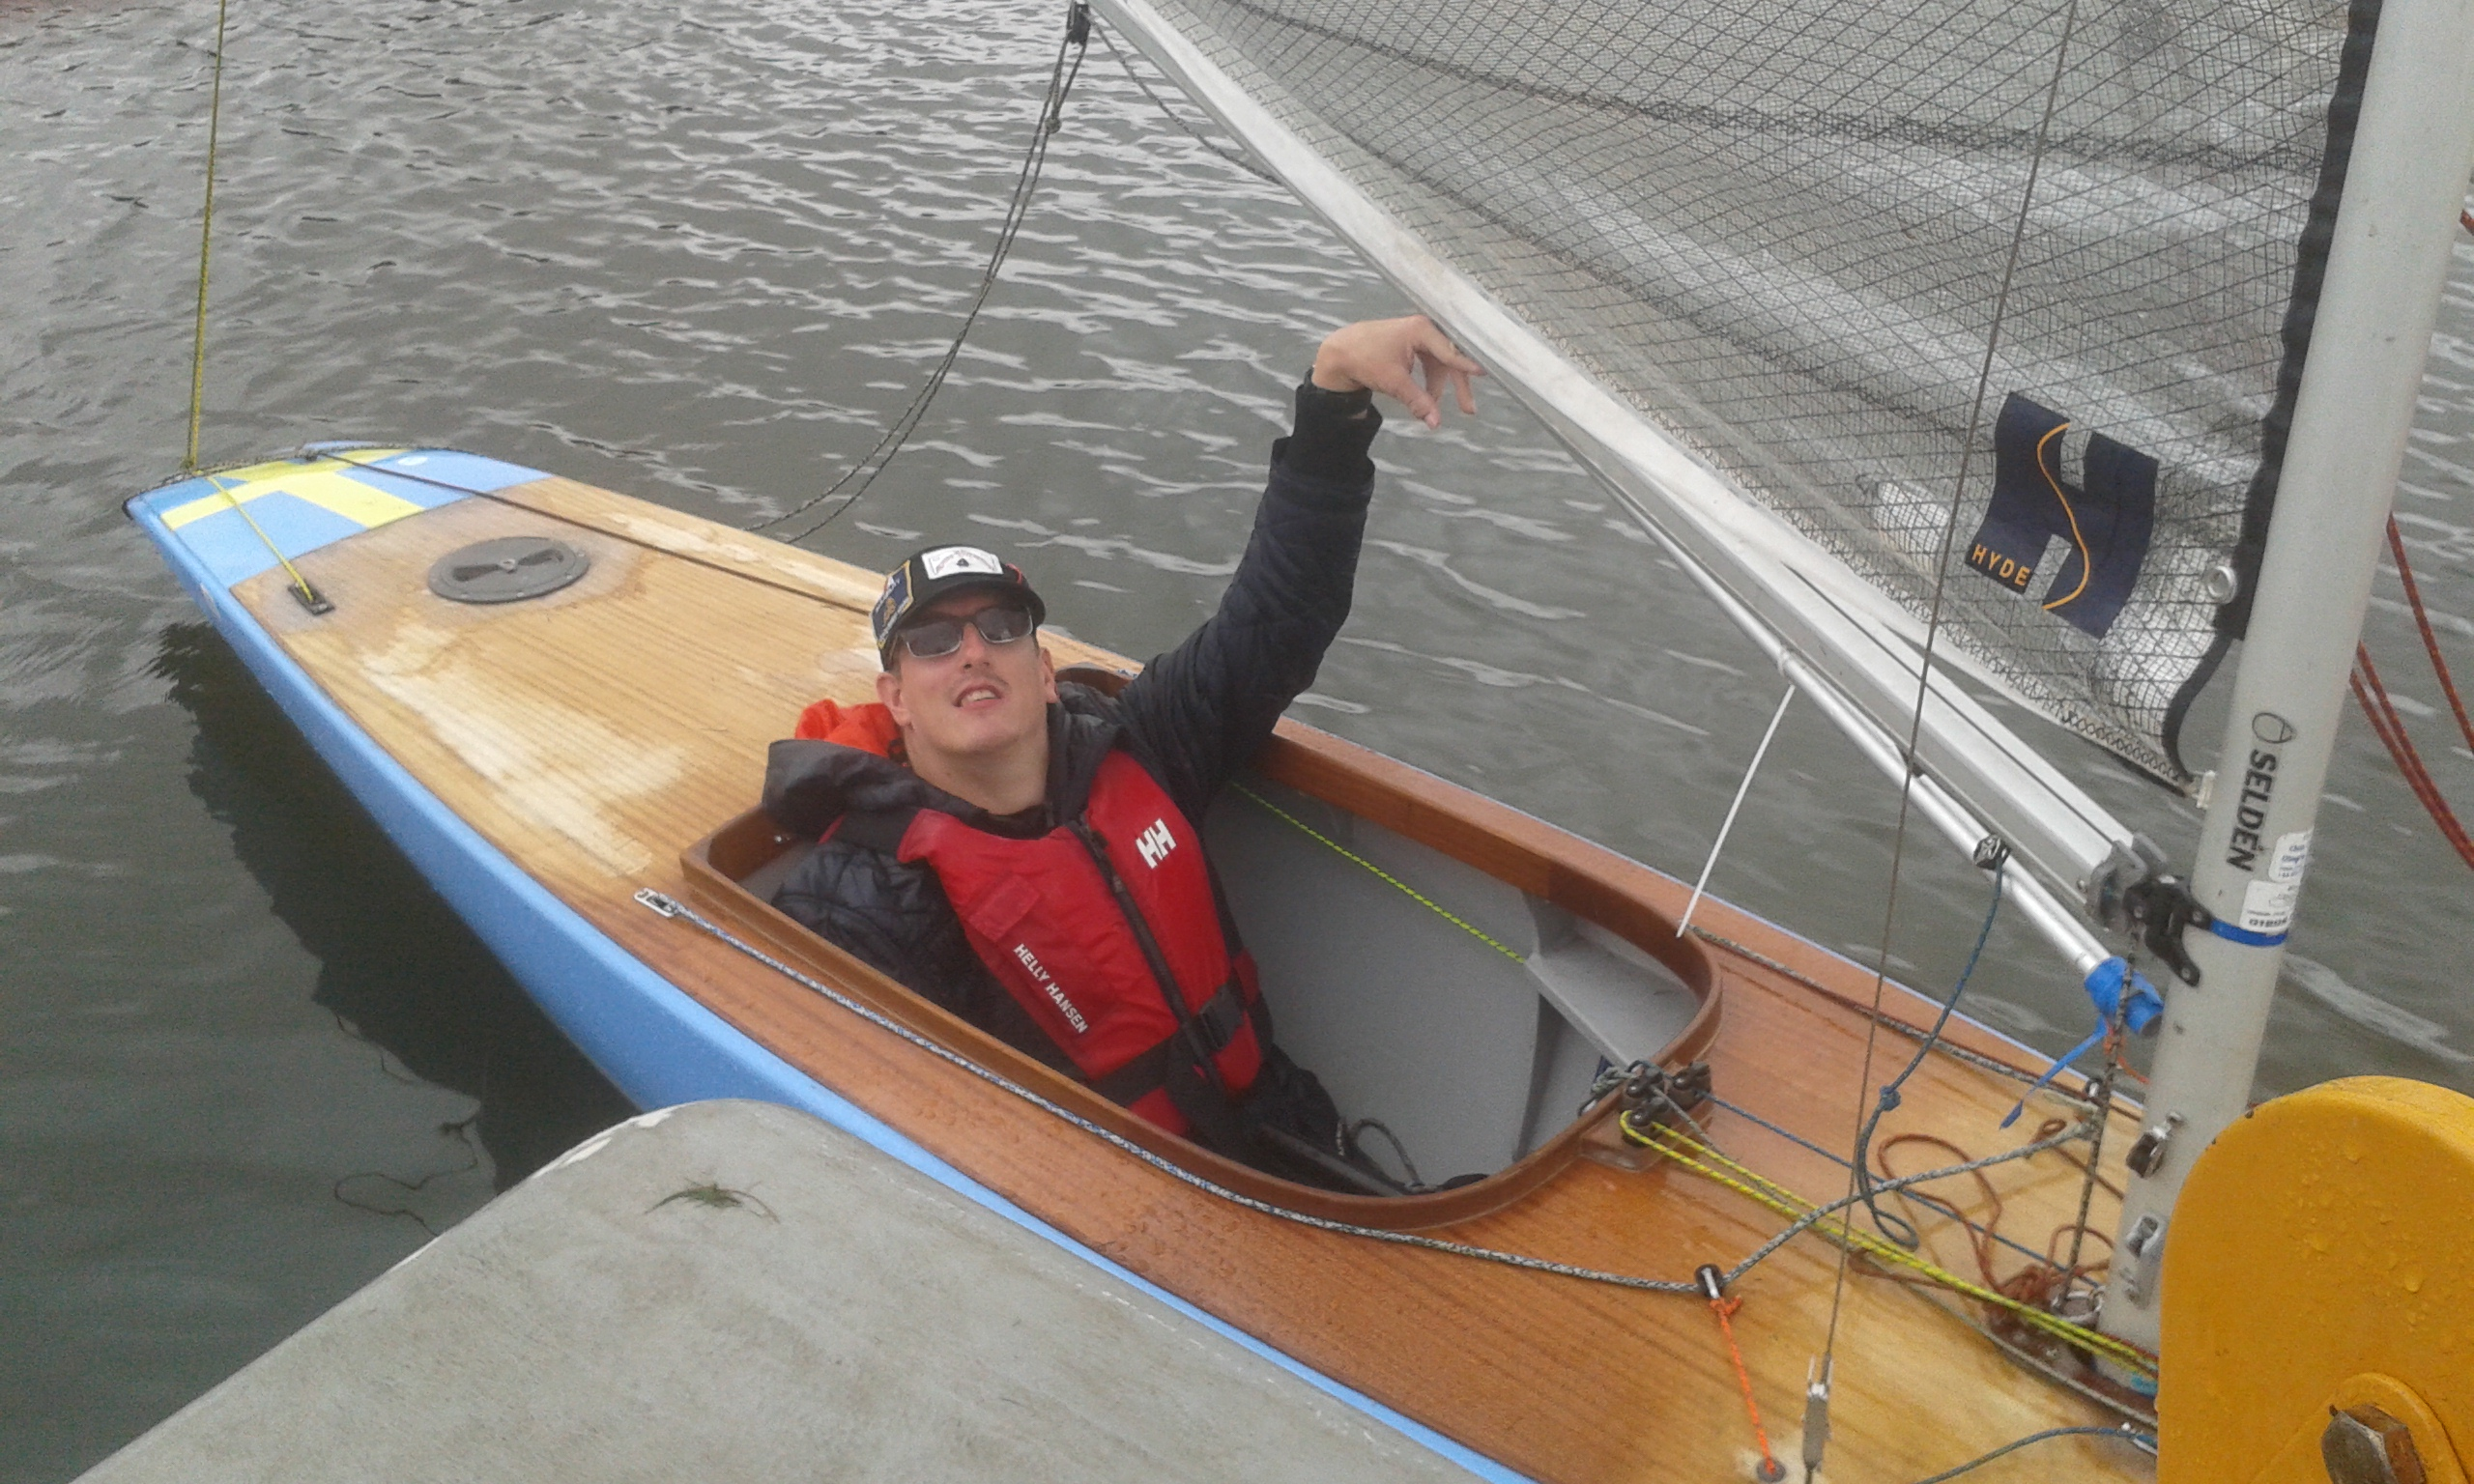 Chris in the Keel boat for the first time